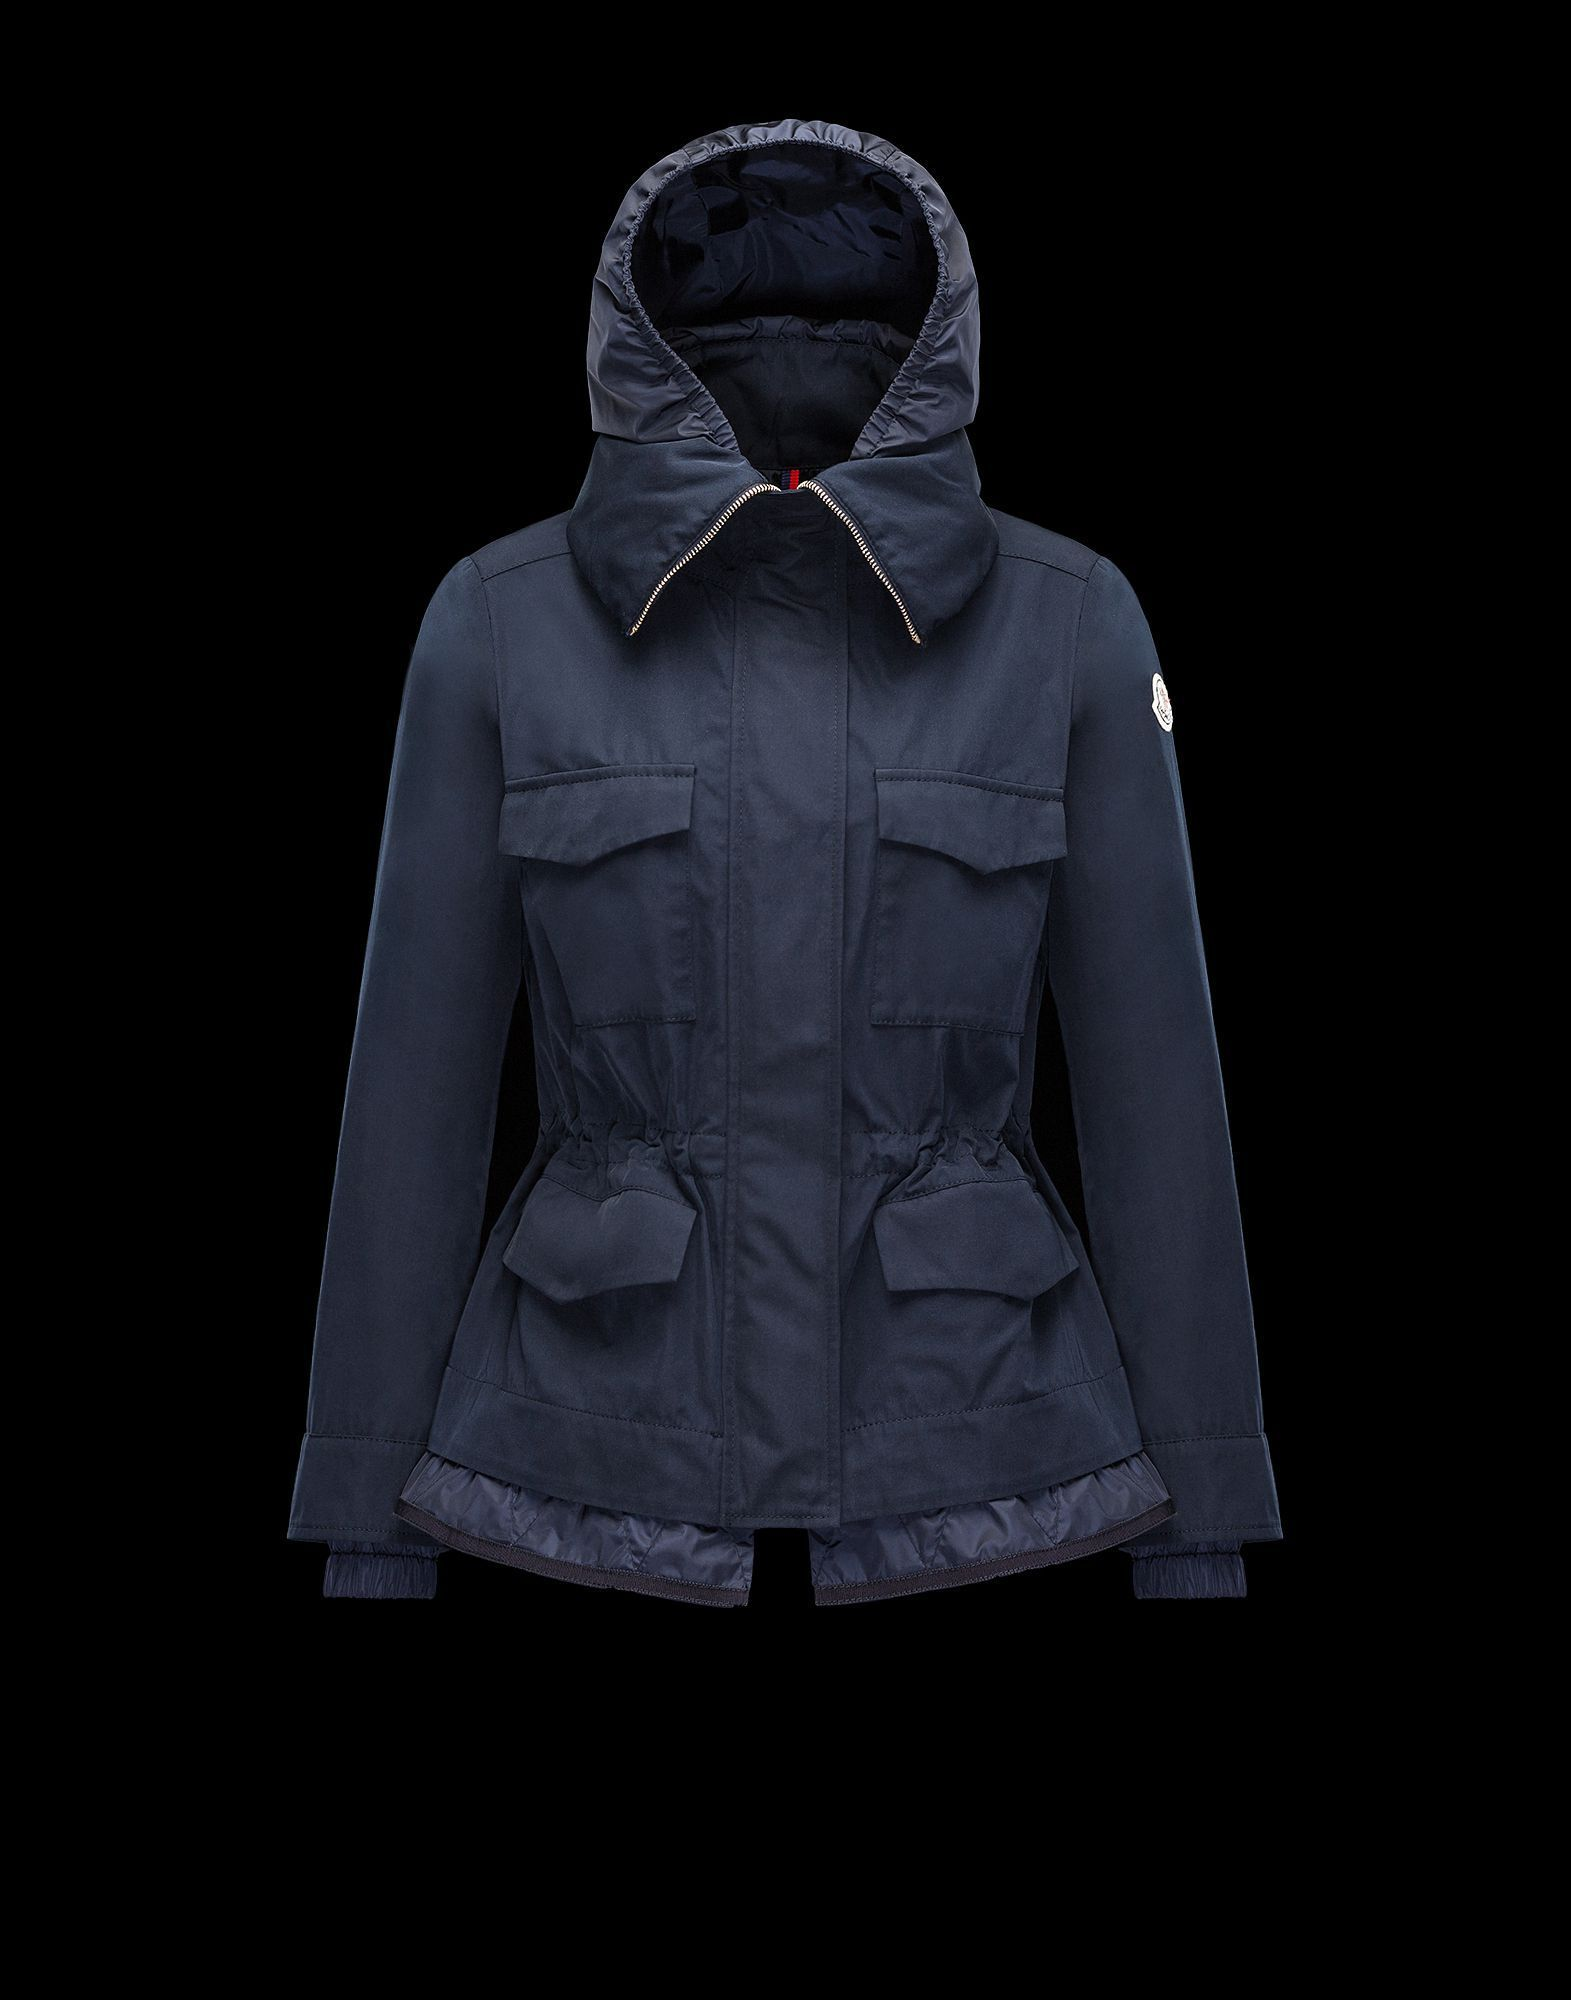 Moncler More Jackets Moncler 17 Spring Summer Eclair Jacket Navy Blue Outerwear Fashion Jackets Overcoats [ 2000 x 1571 Pixel ]